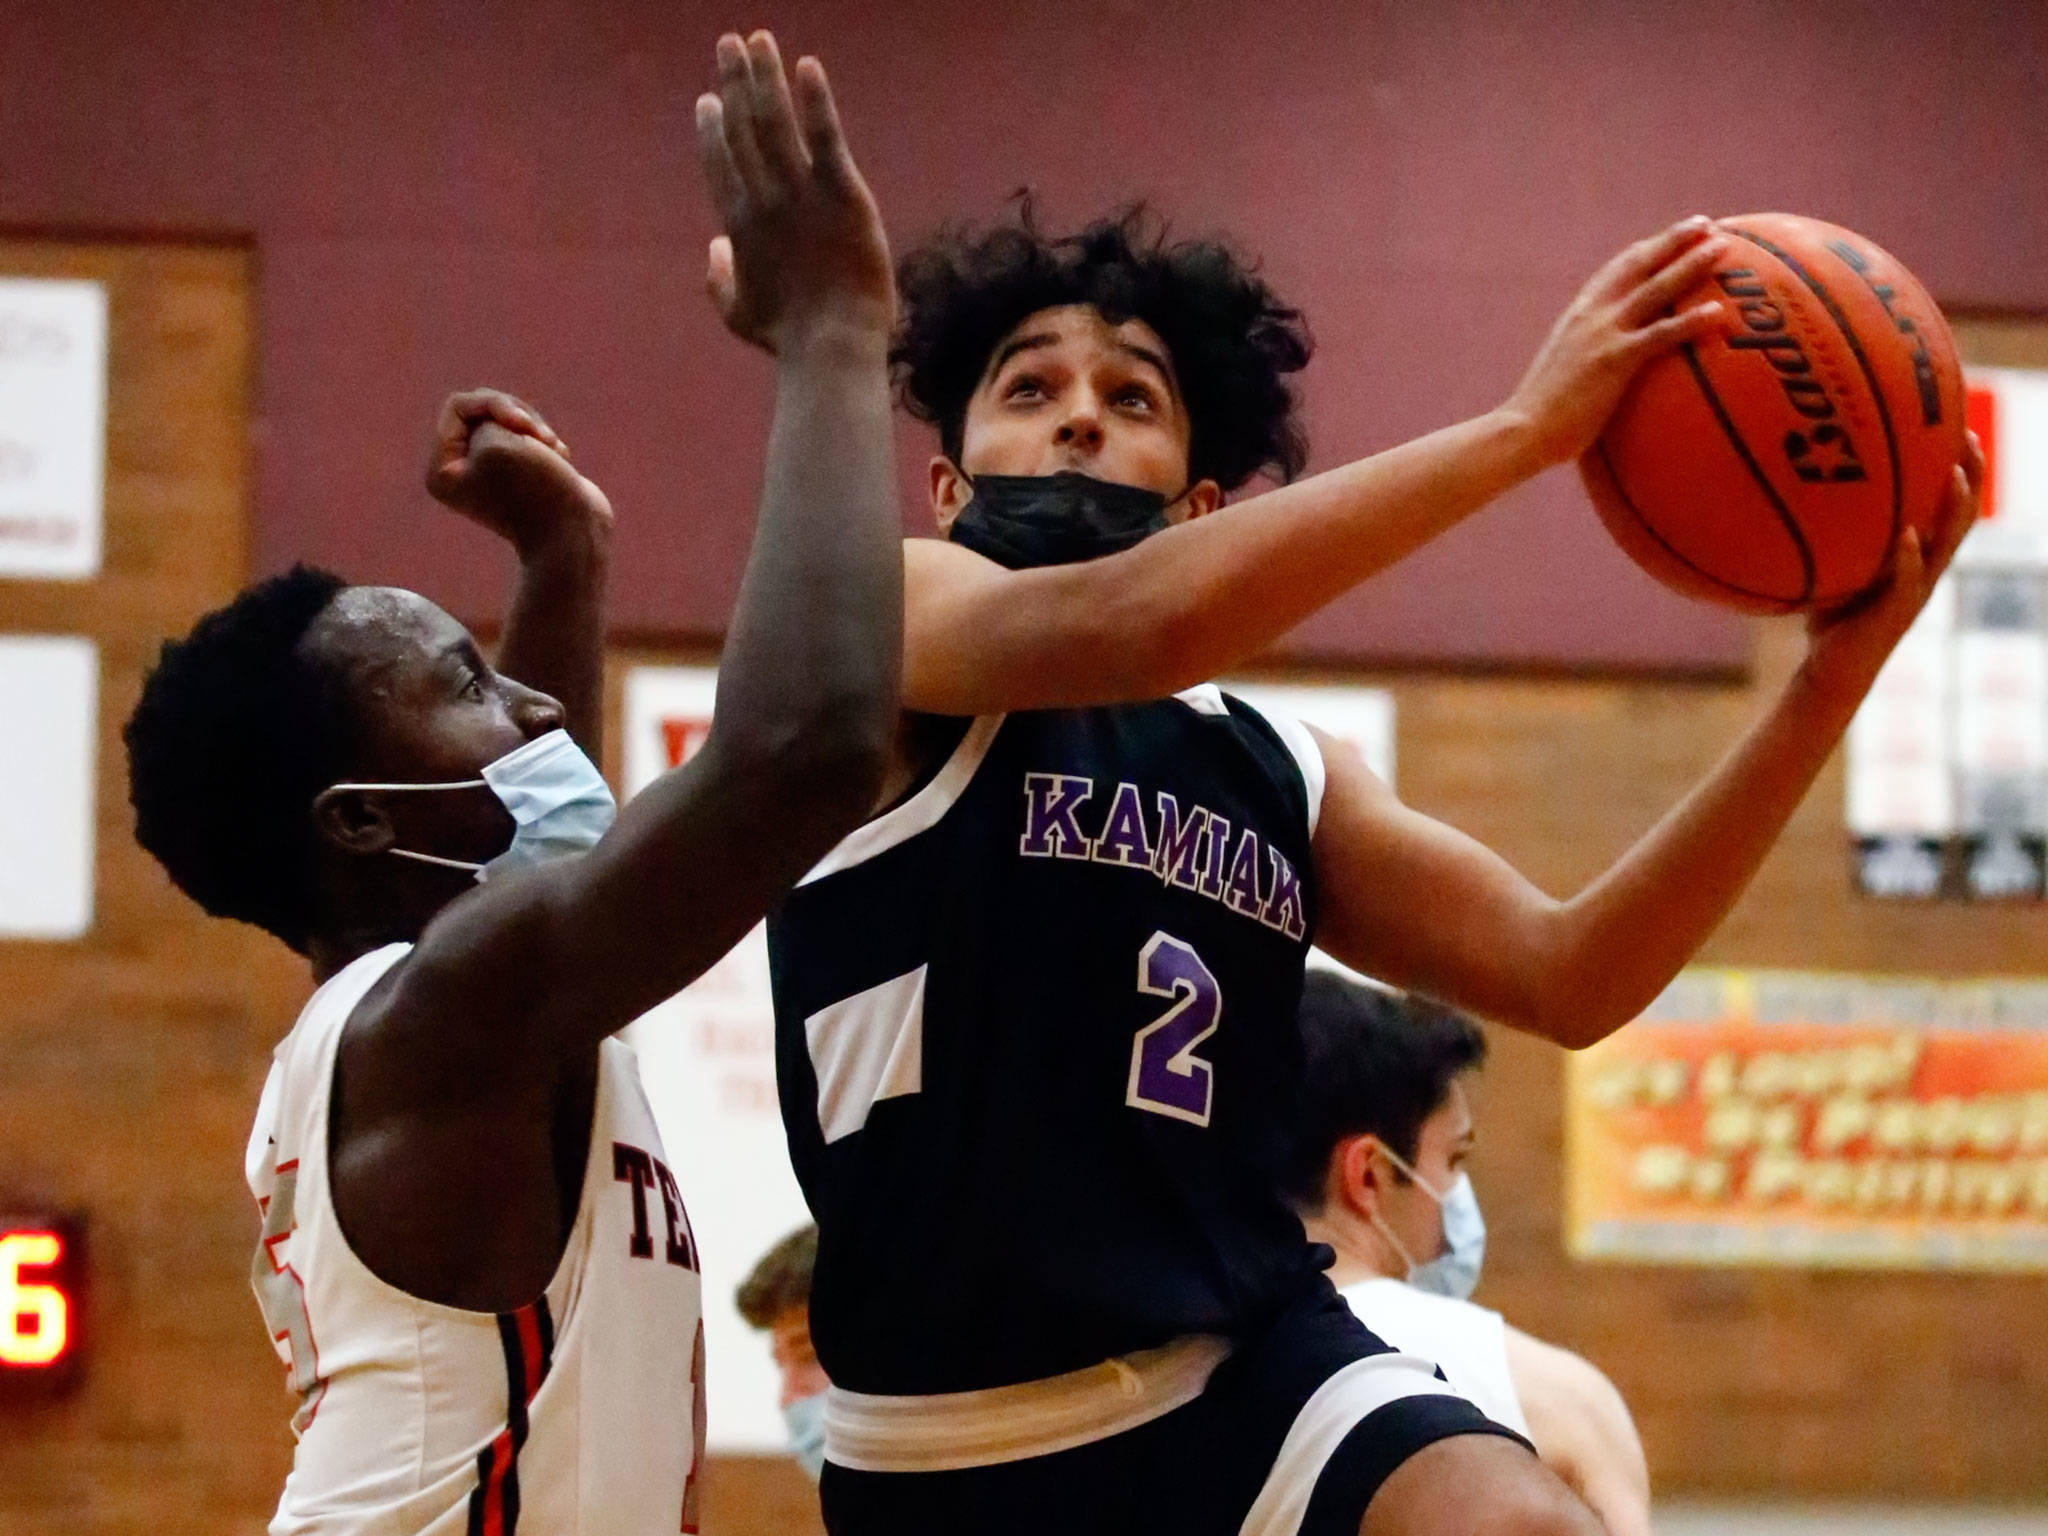 Kamiak's Jaytin Hara looks to shoot with Mountlake Terrace's Jeffrey Anyimah defending during a game at Mountlake Terrace High School on June 10. (Kevin Clark / The Herald)